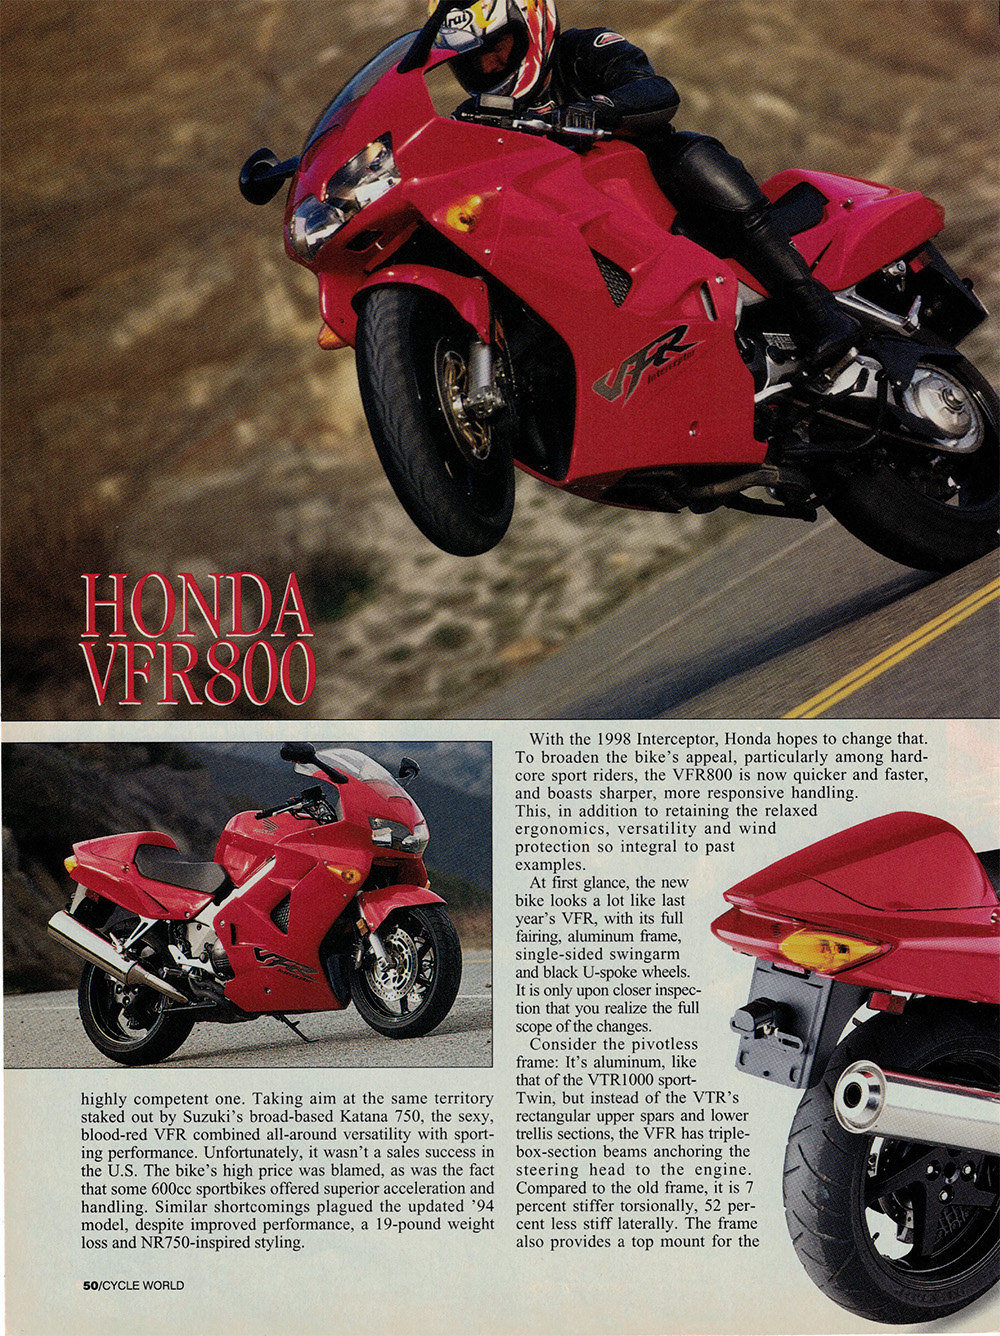 1998 Honda VFR800Fi road test 3.jpg